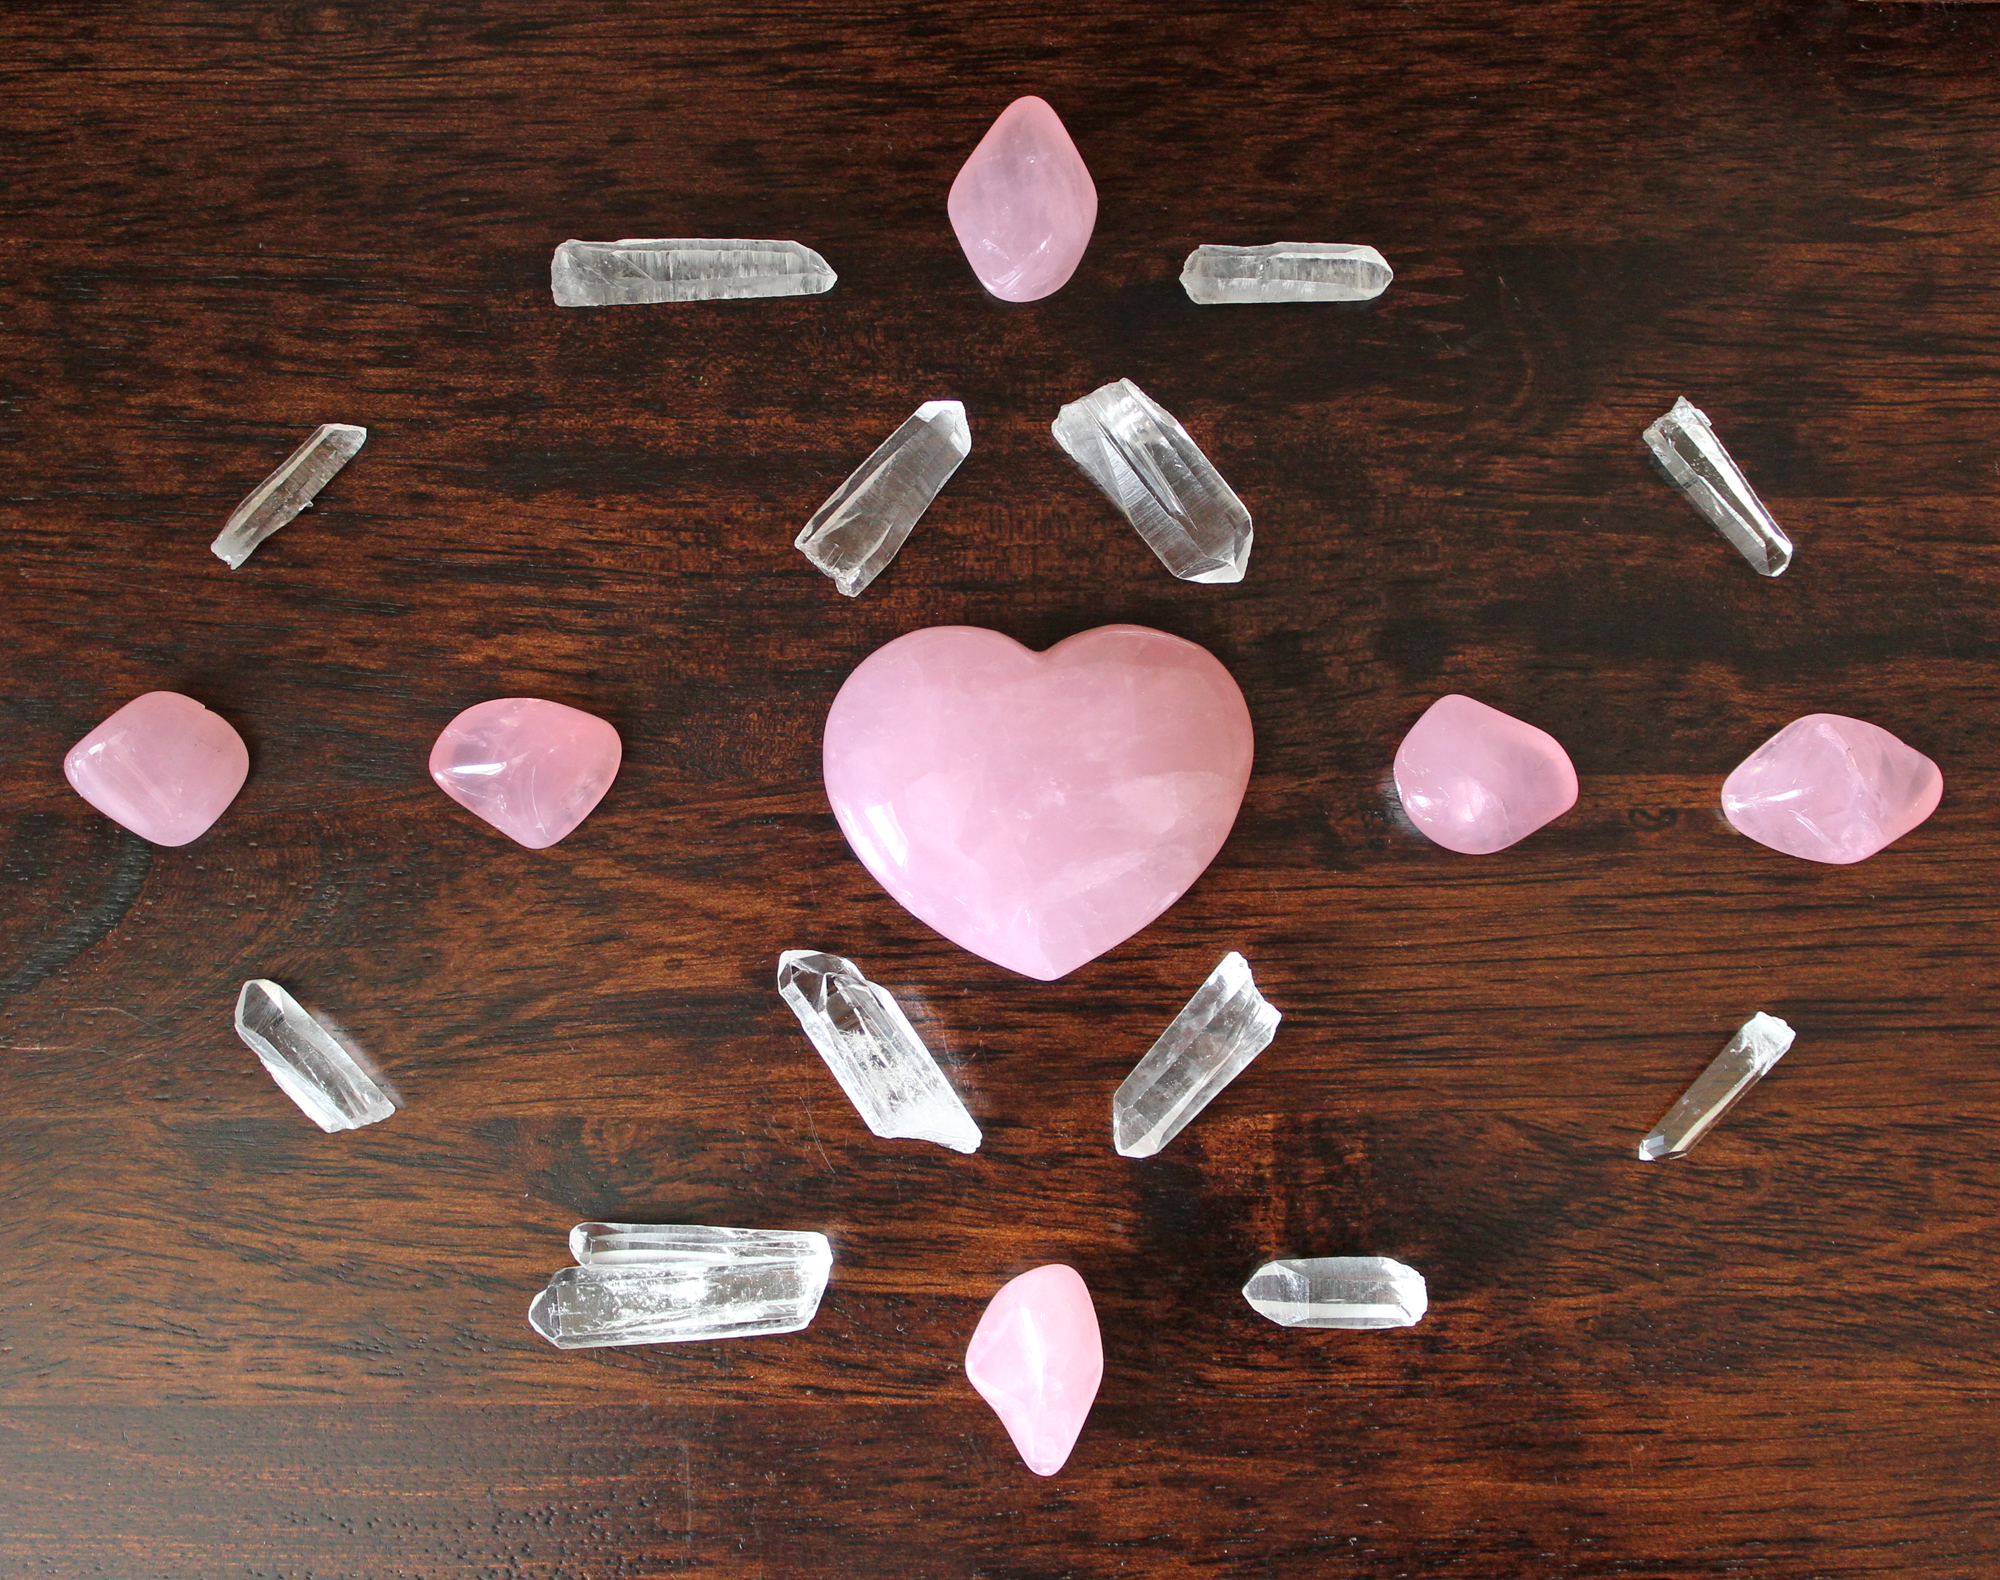 Crystal grids for love, healing and peace